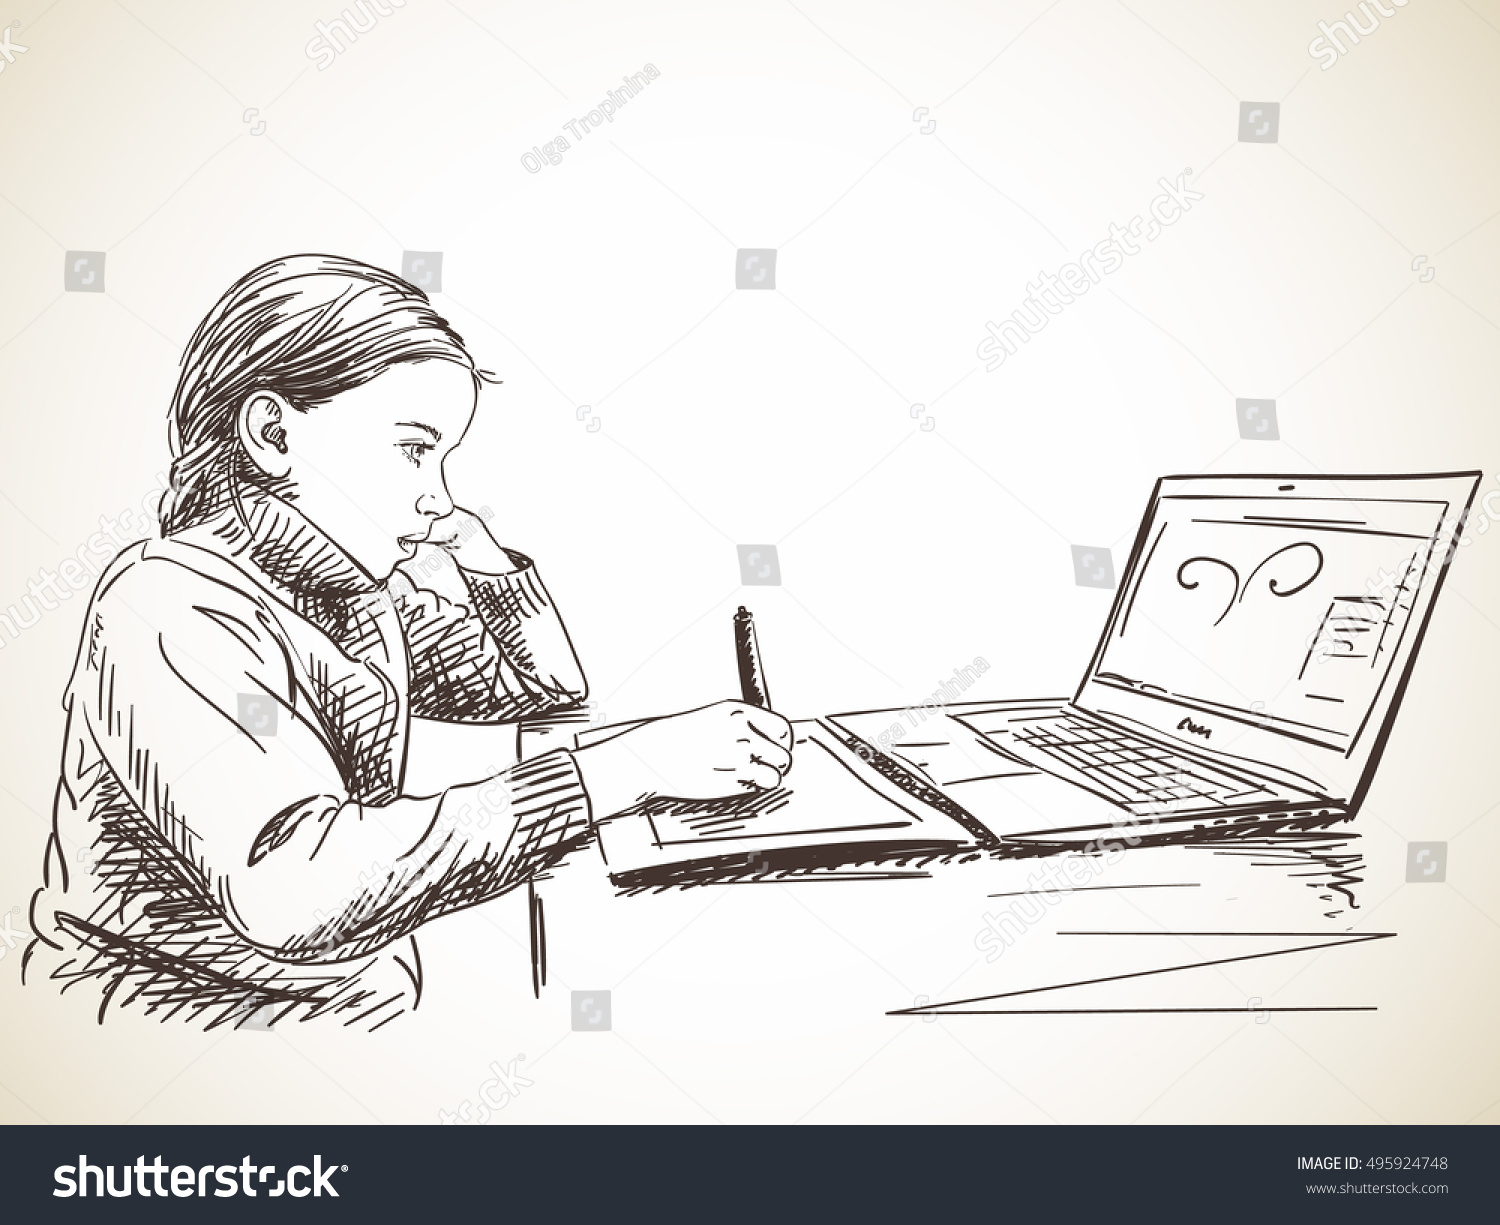 Notebook And Pen Sketch Stock Vector Art More Images Of: Sketch Girl Studying Draw Using Pen Stock Vector 495924748